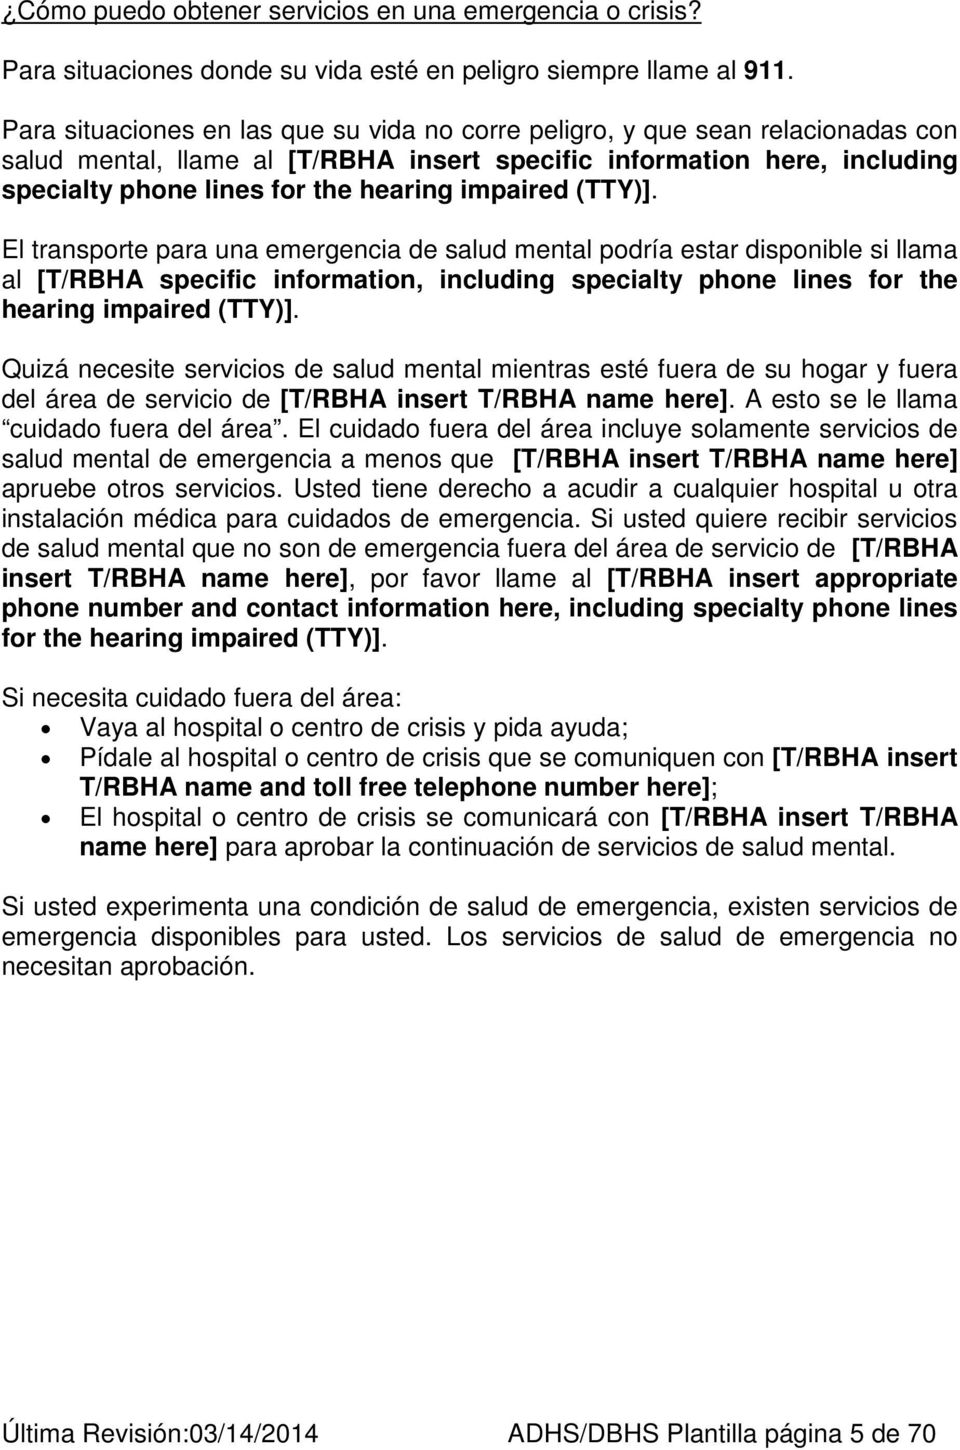 impaired (TTY)]. El transporte para una emergencia de salud mental podría estar disponible si llama al [T/RBHA specific information, including specialty phone lines for the hearing impaired (TTY)].